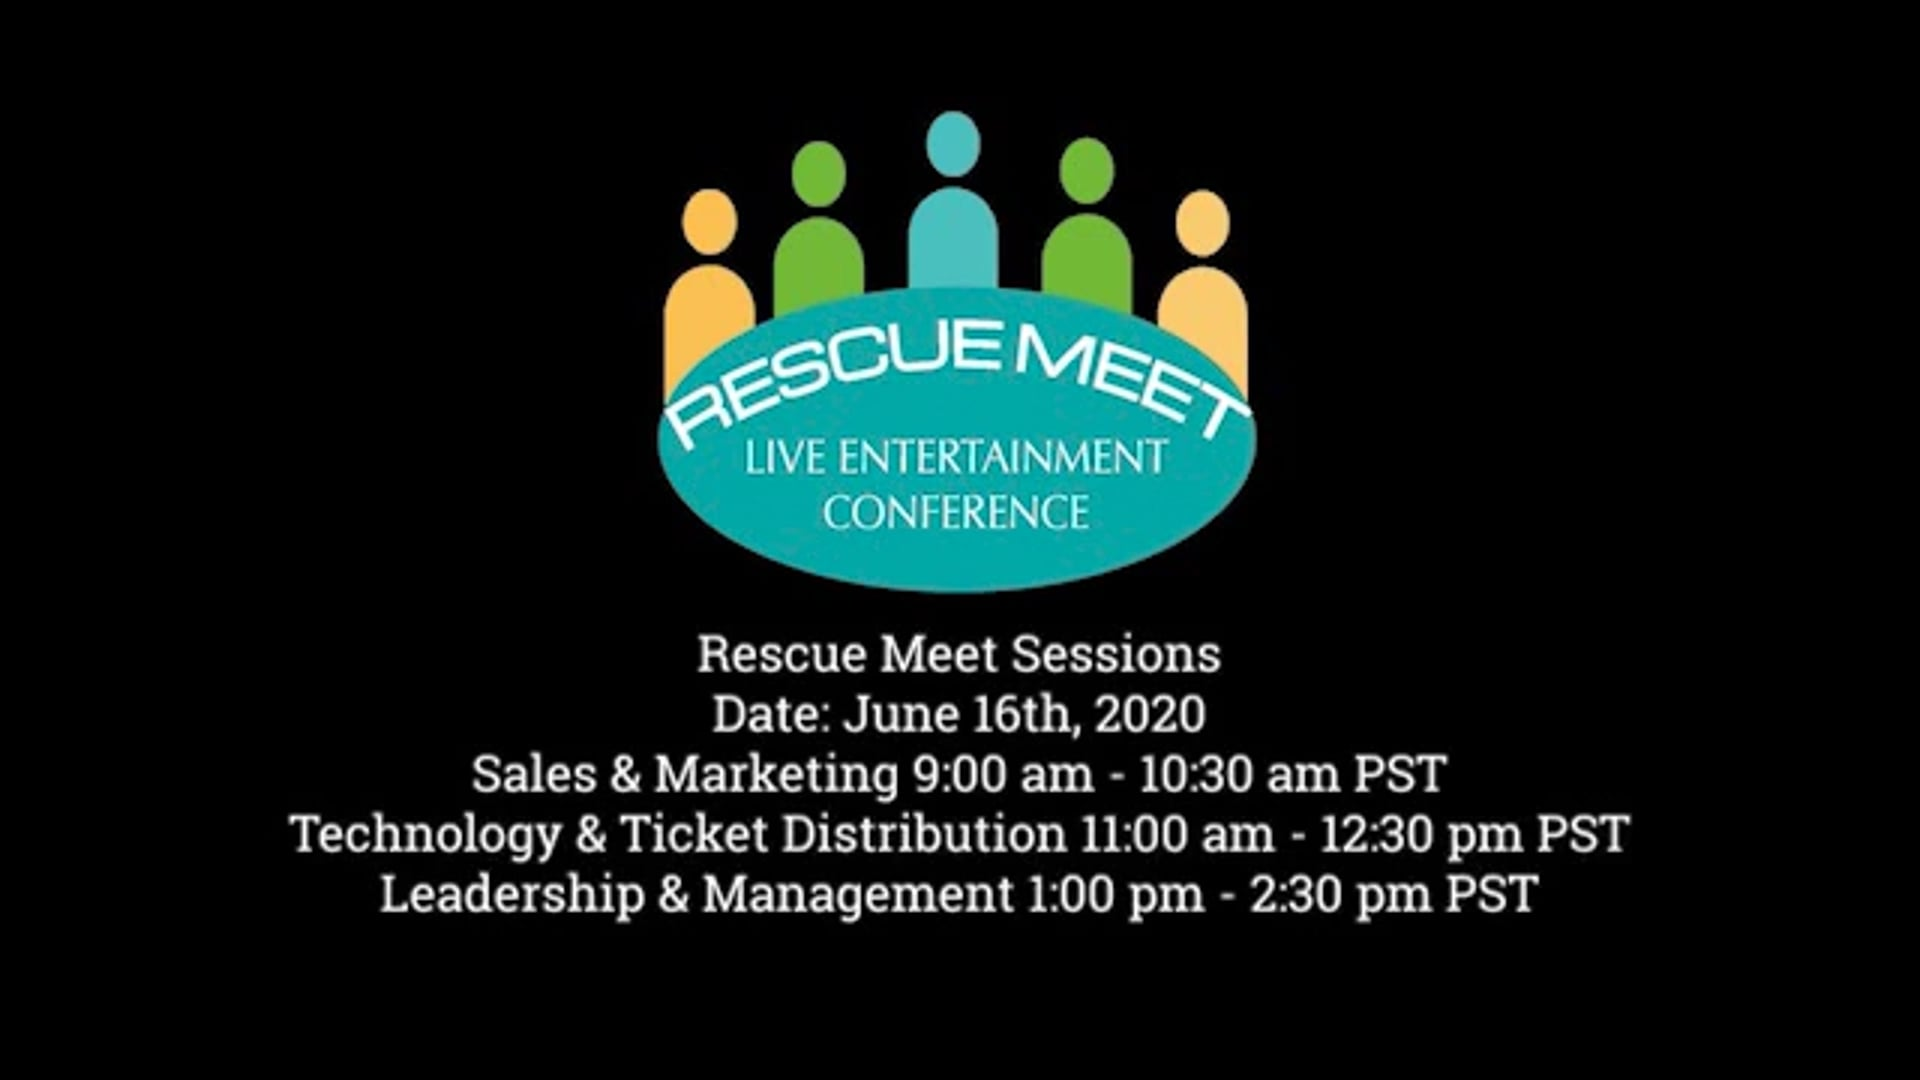 Rescue Meet Sessions: Sales & Marketing